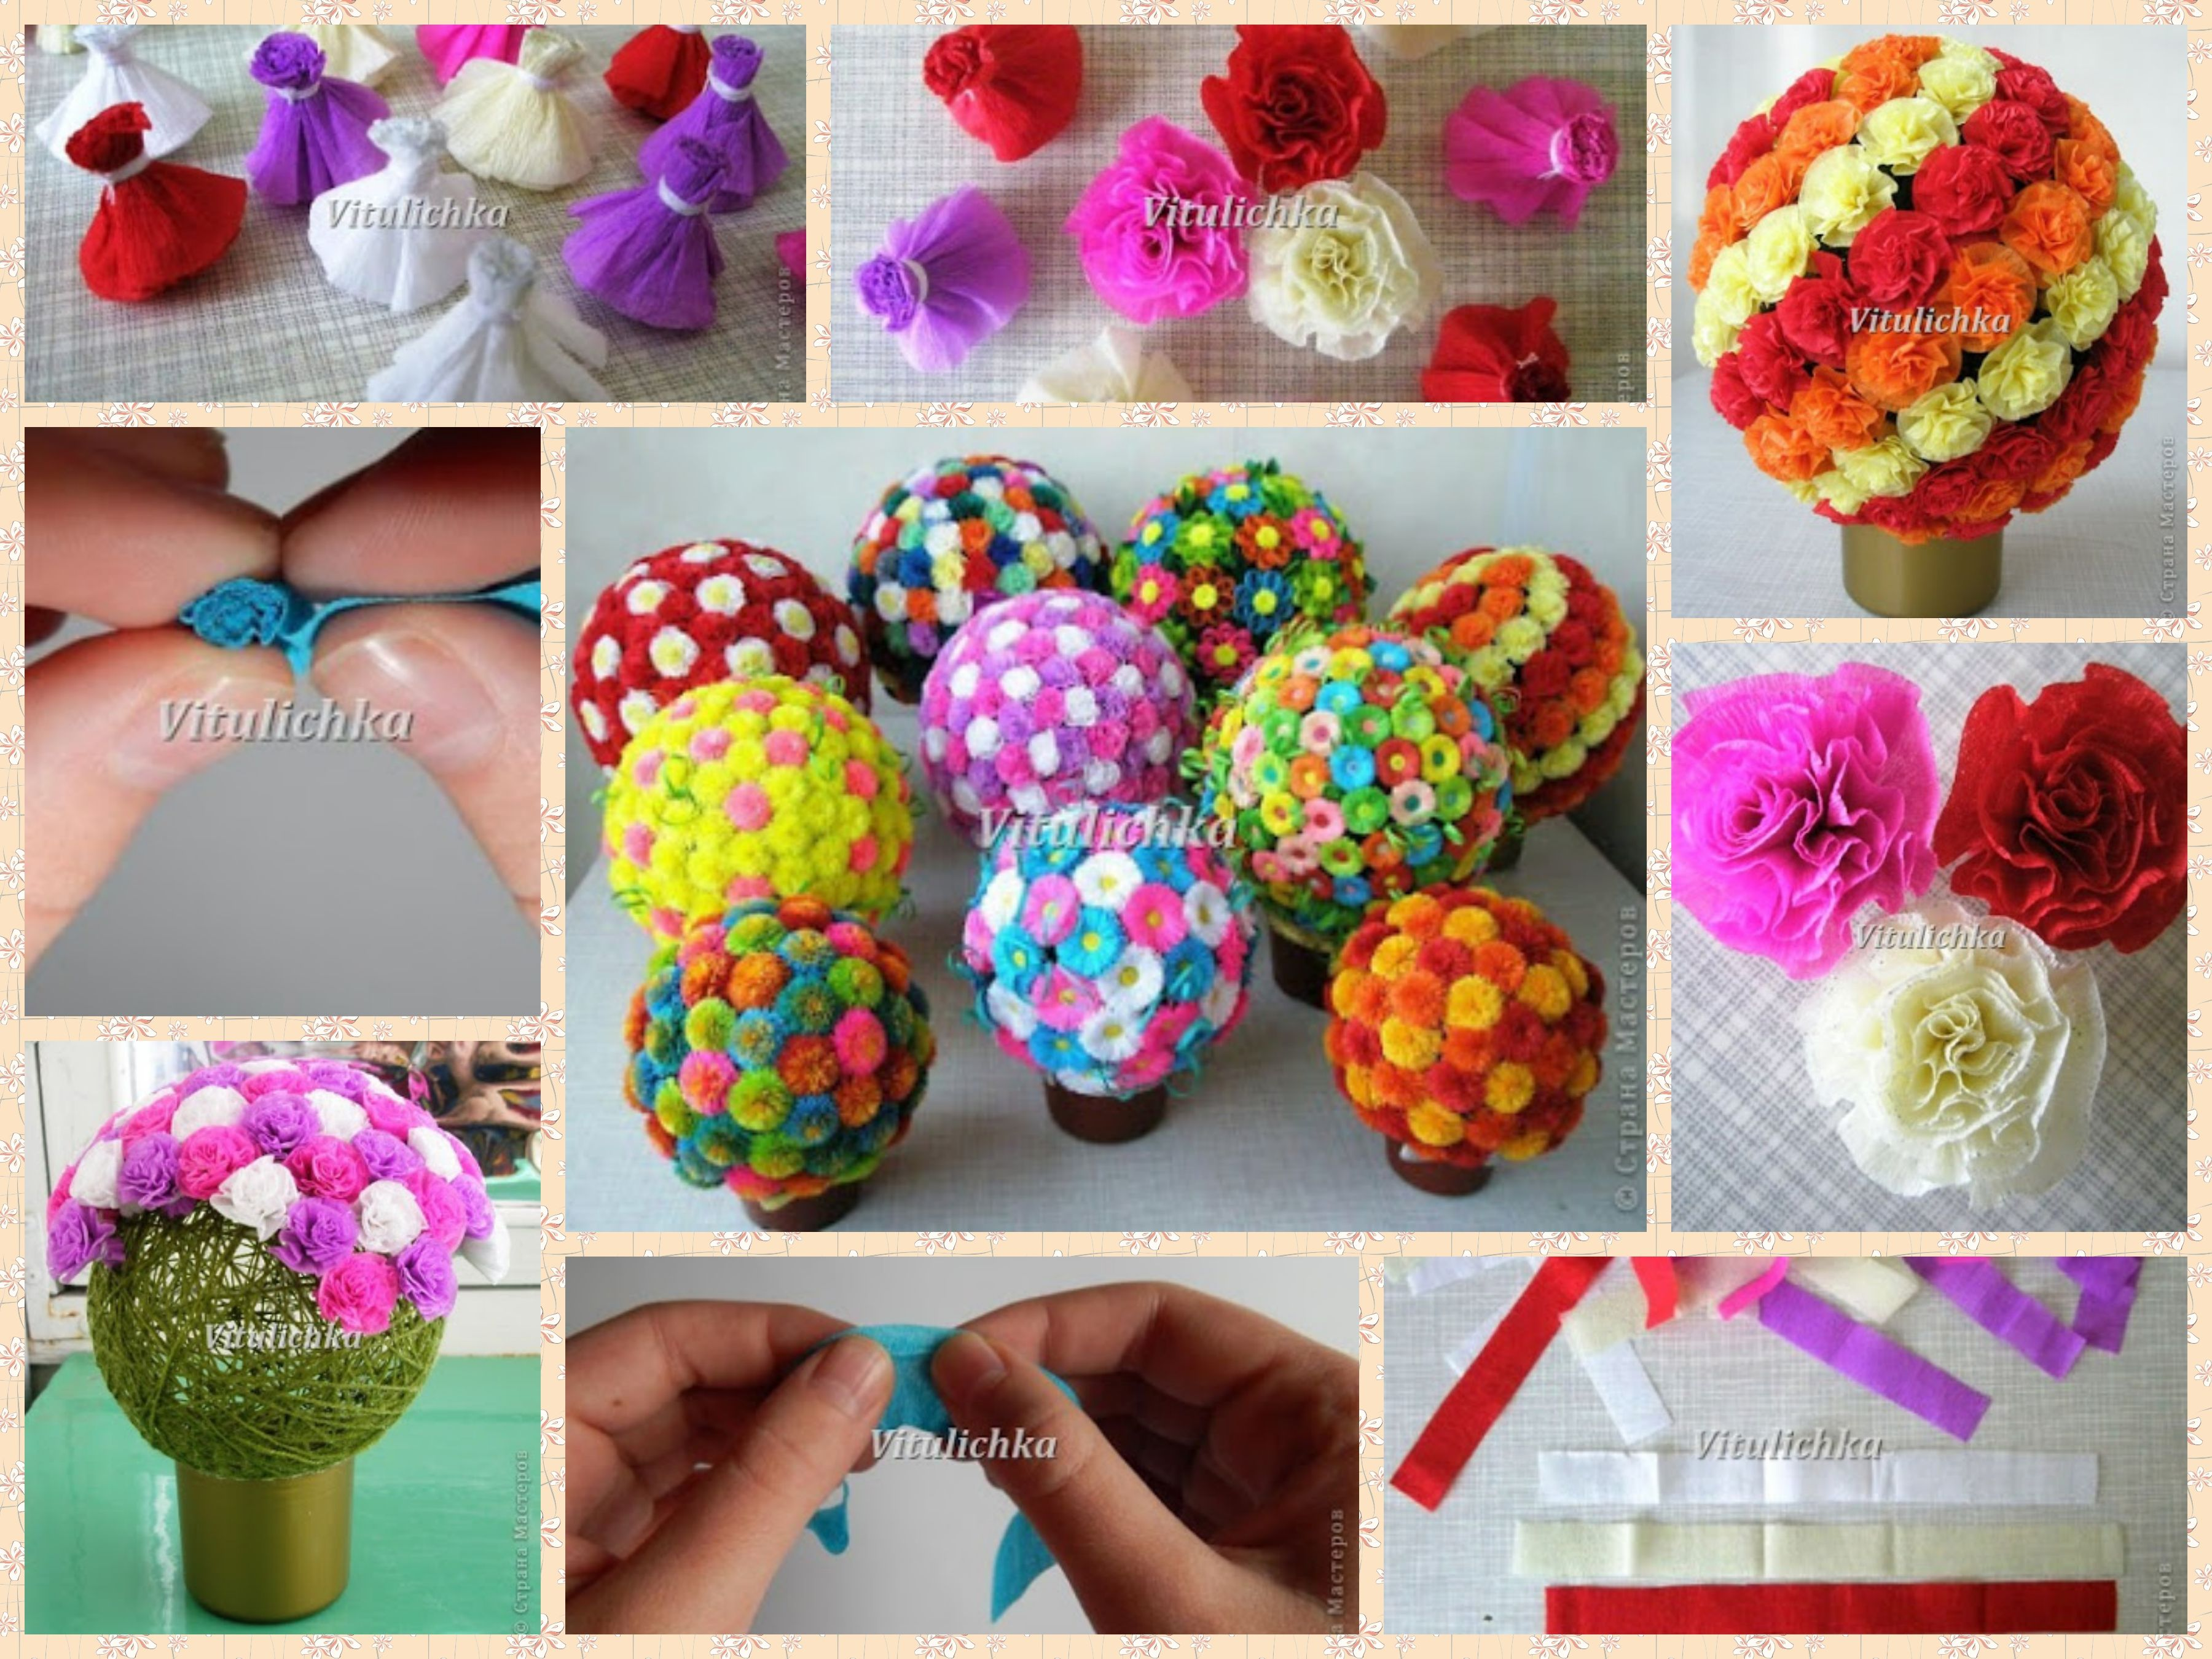 Flower bunch made with paper flowers do it yourself pinterest flower bunch made with paper flowers do it yourselfpaper flowers mightylinksfo Images